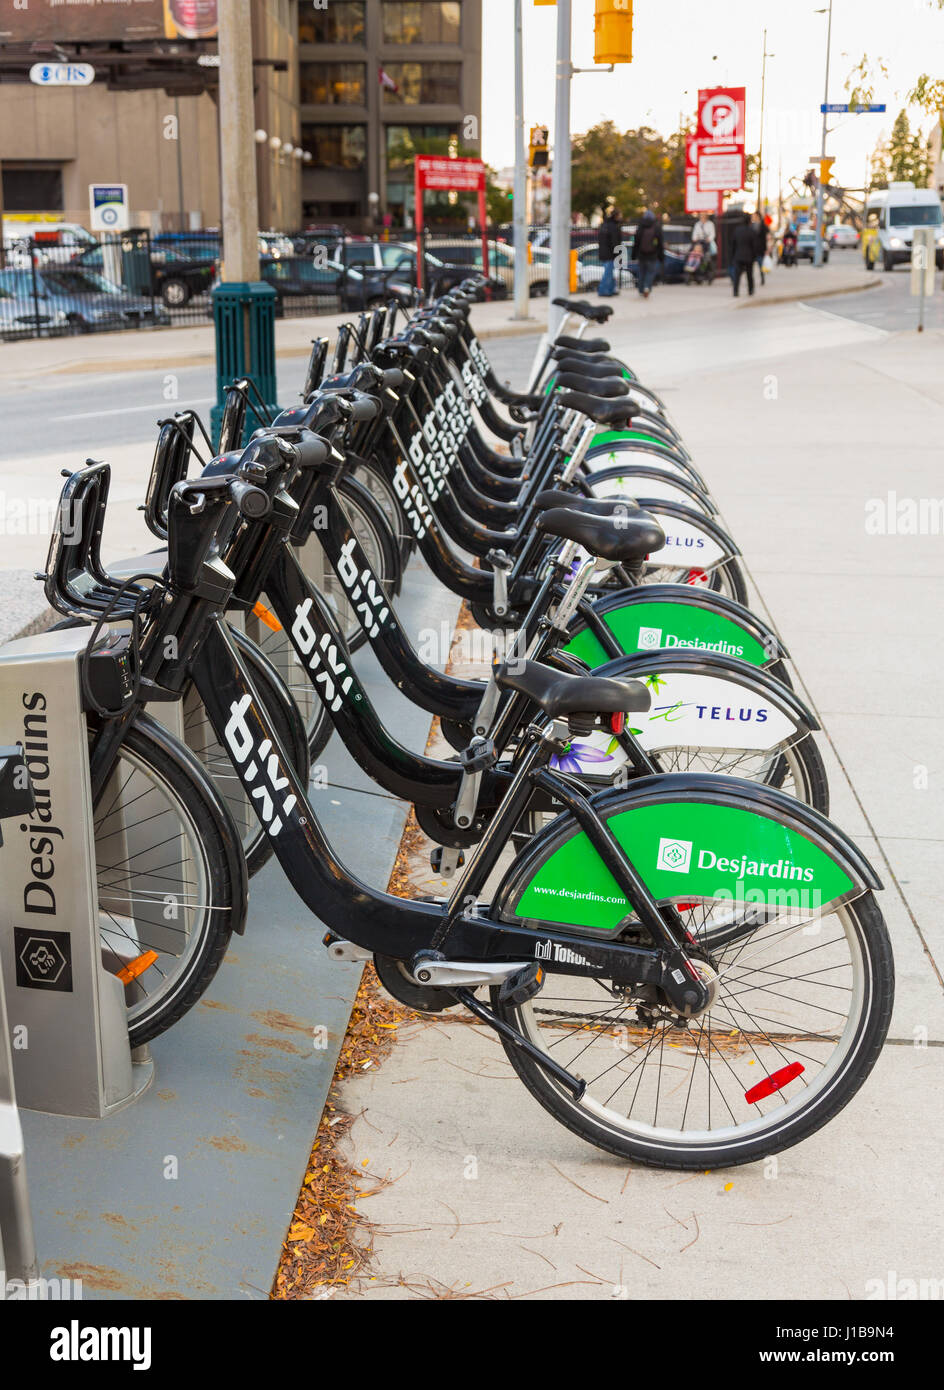 Row of bike share cycle rental bicycles sponsored by Desjardins and Telus on the streets of Toronto in Ontario, - Stock Image